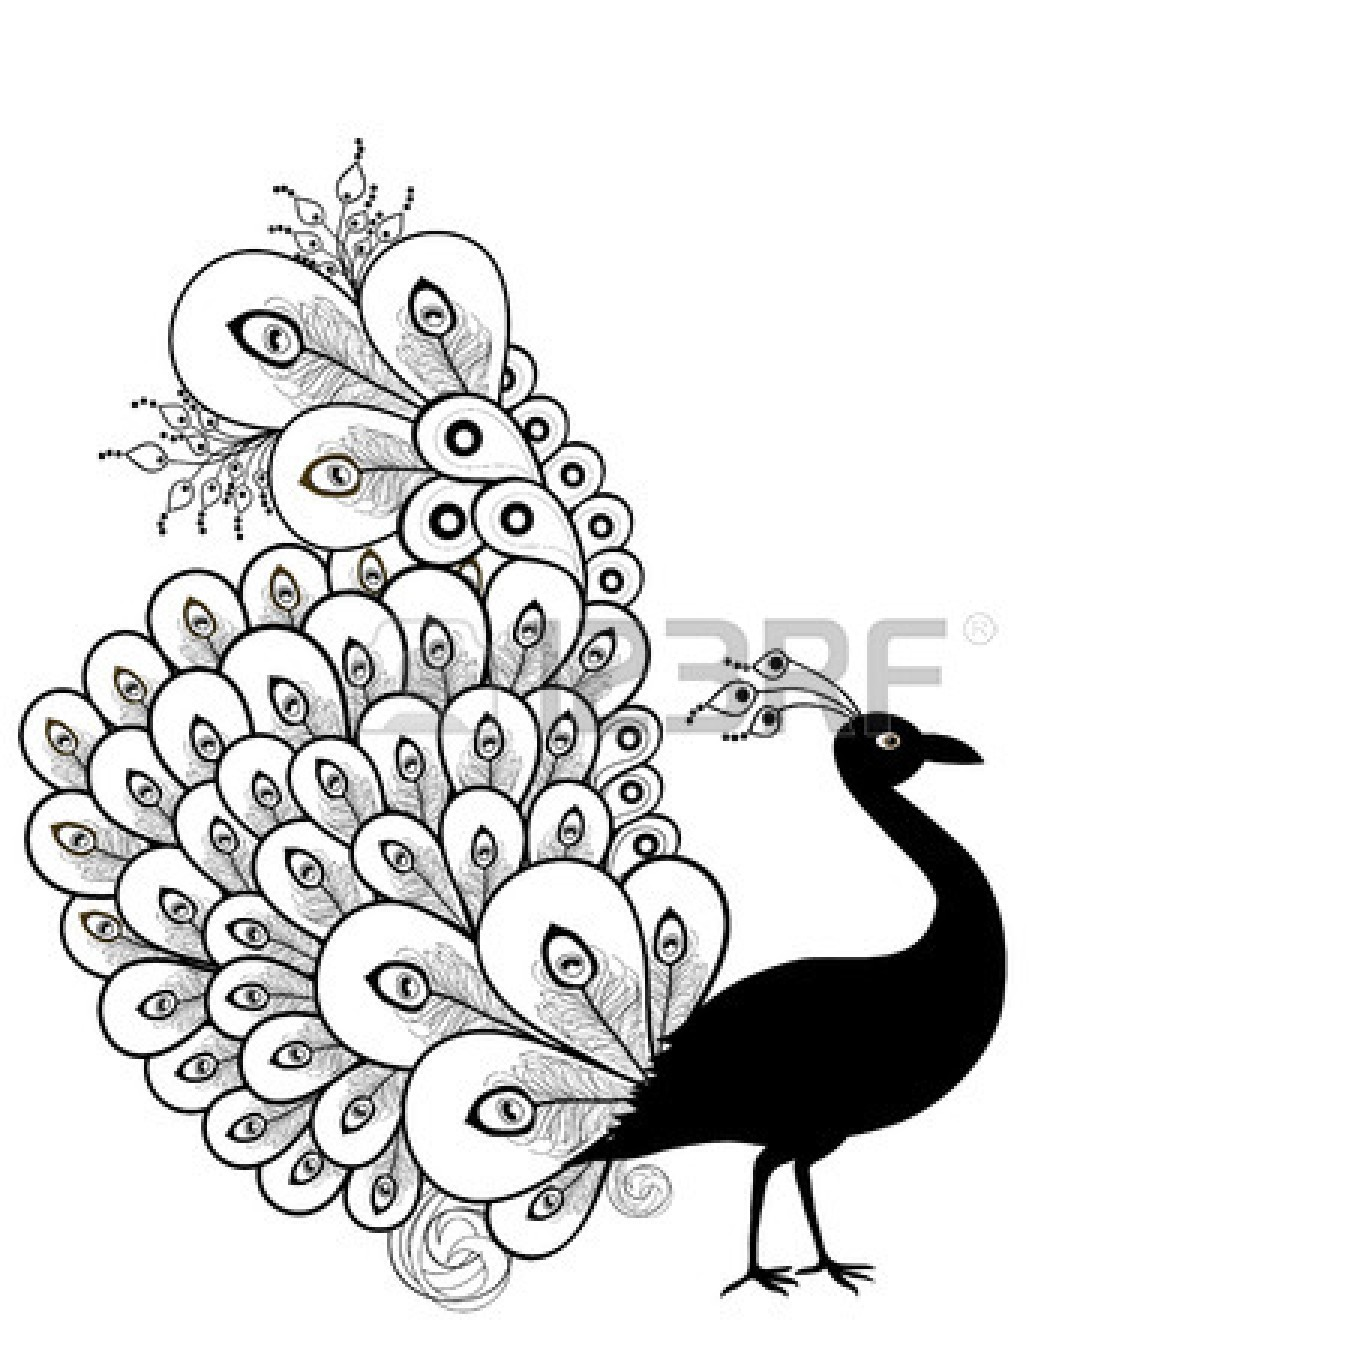 Peafowl clipart indian peacock White And Black peacock%20black%20and%20white Clipart